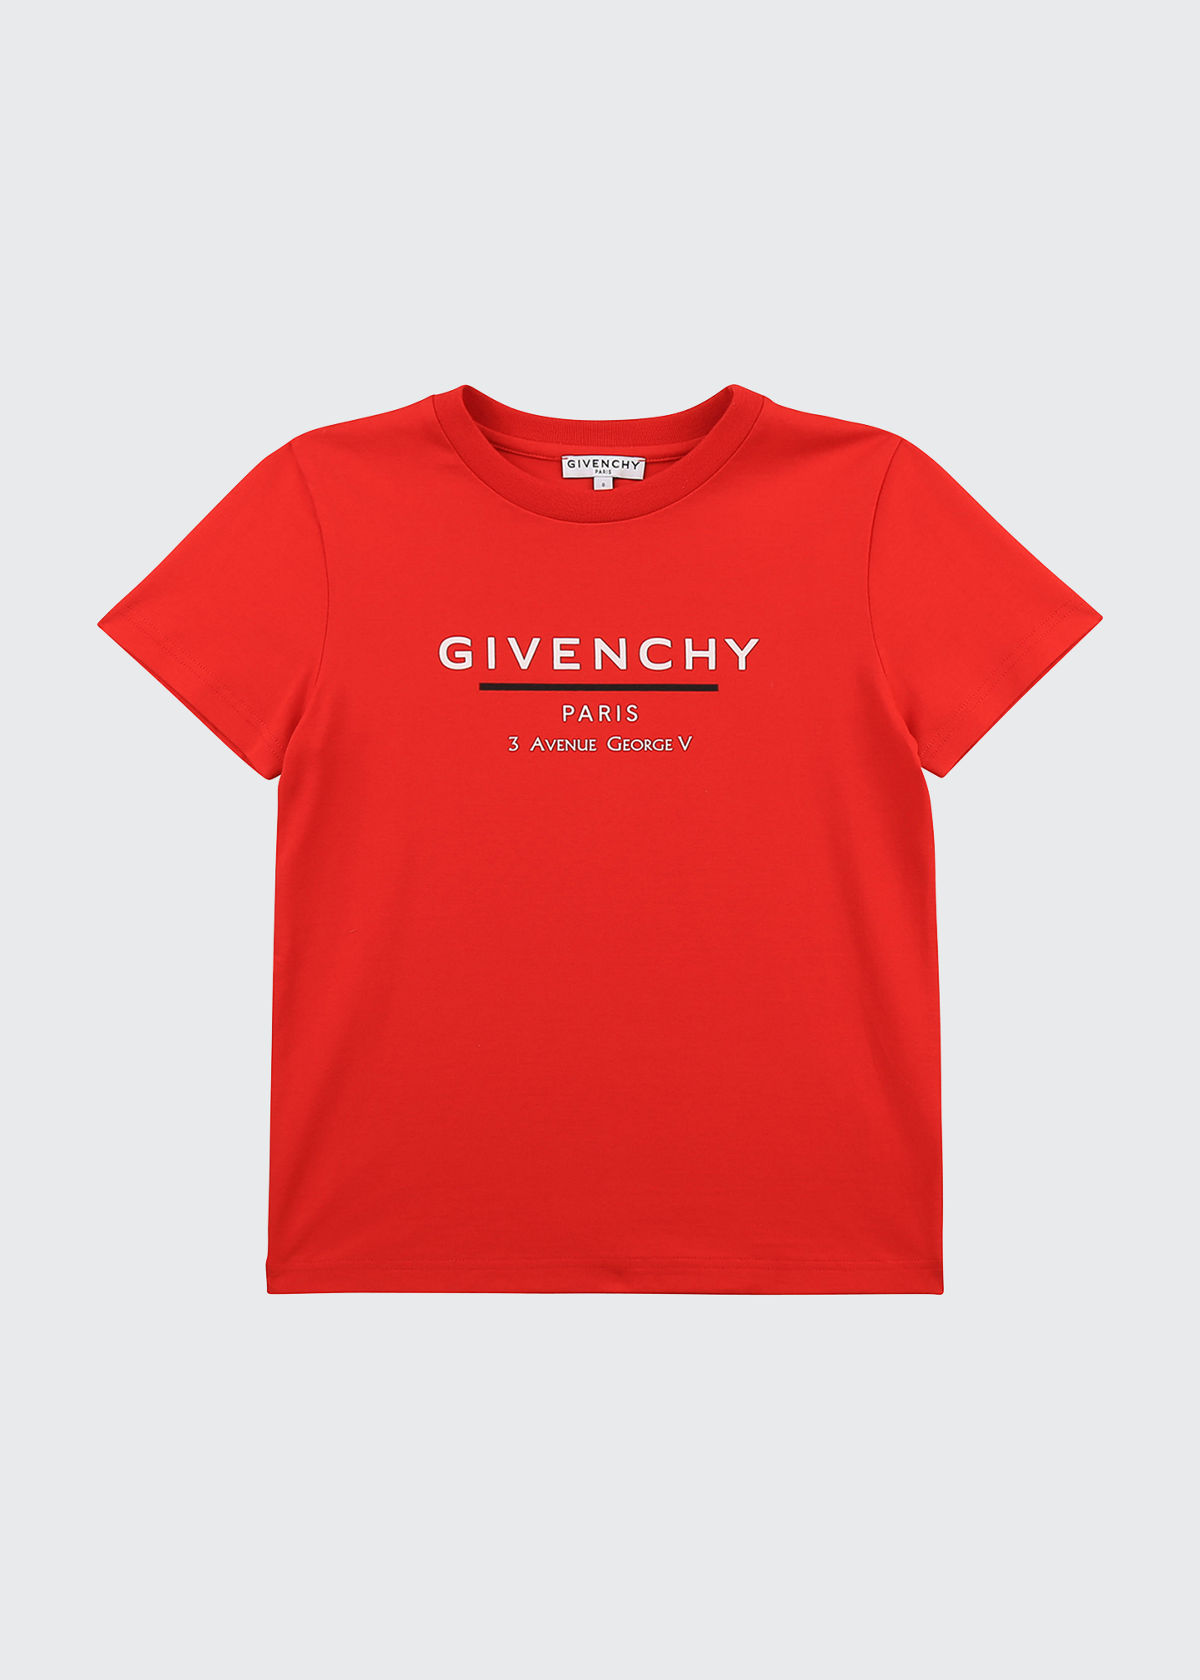 Givenchy BOY'S UNDERLINE LOGO-PRINT SHORT-SLEEVE T-SHIRT